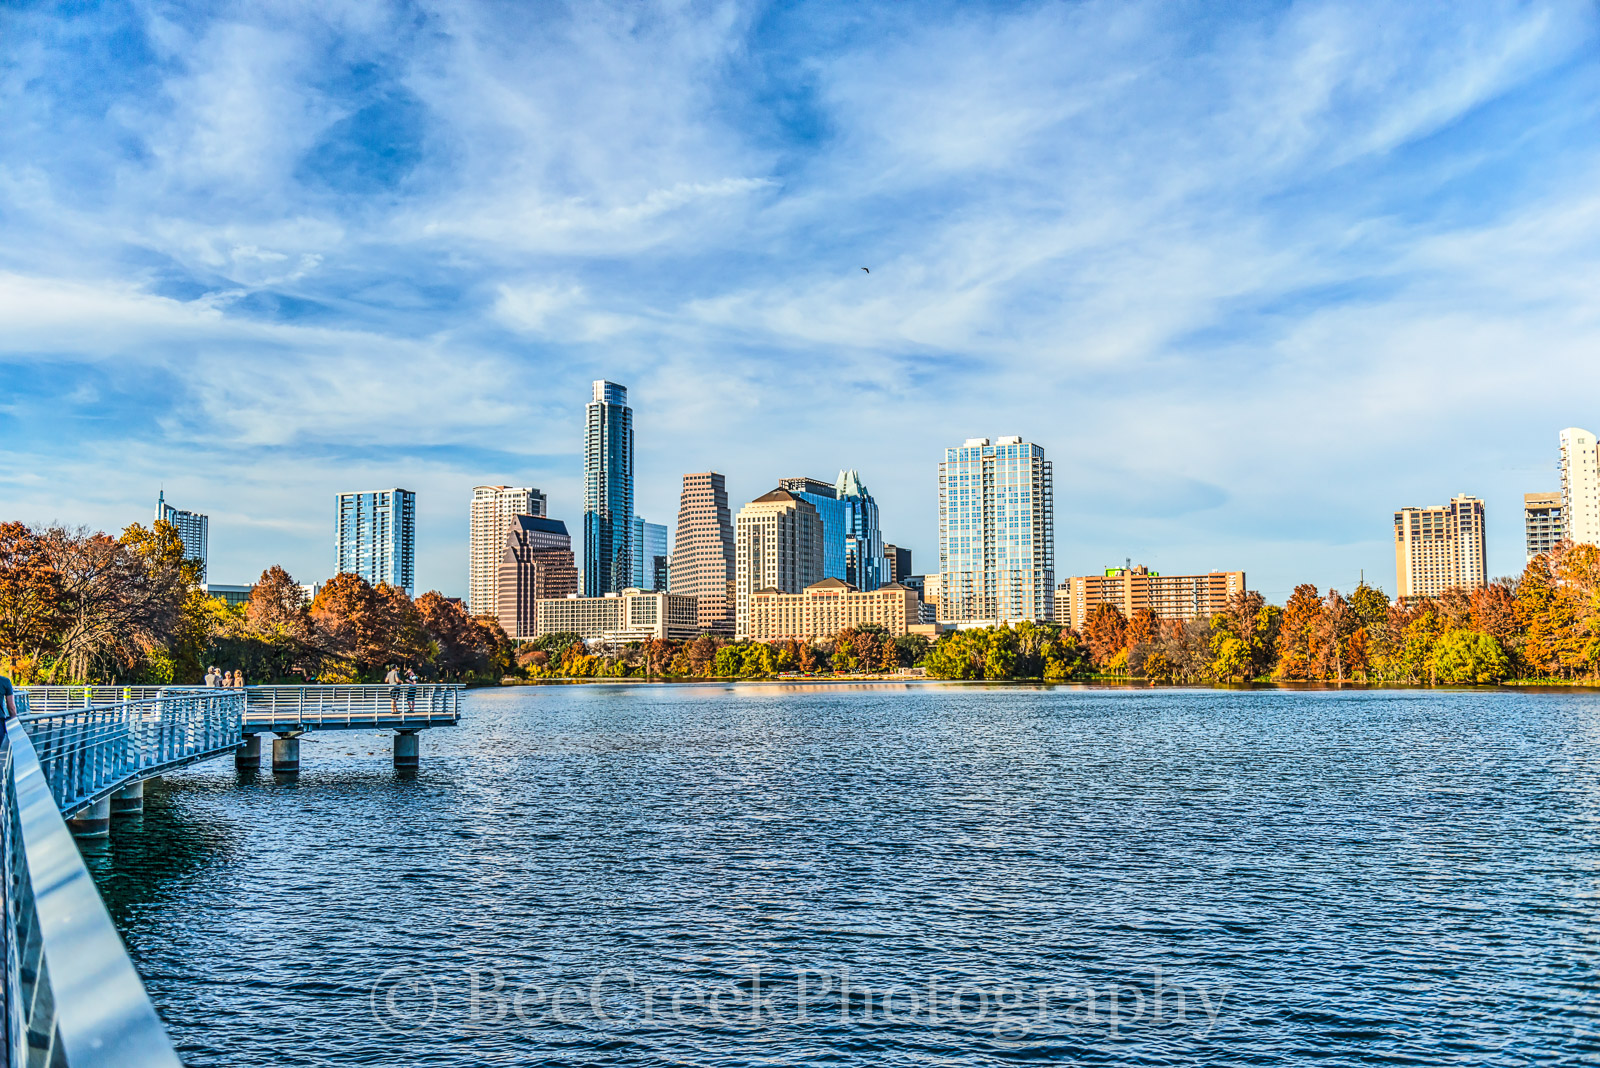 Austin, Capital of Texas, austin images, austin photos, austin pictures, boardwalk, city, cityscape, cityscapes, downtown, hike and bike trail, images of austin, ladybird lake, modern, photos of austi, photo